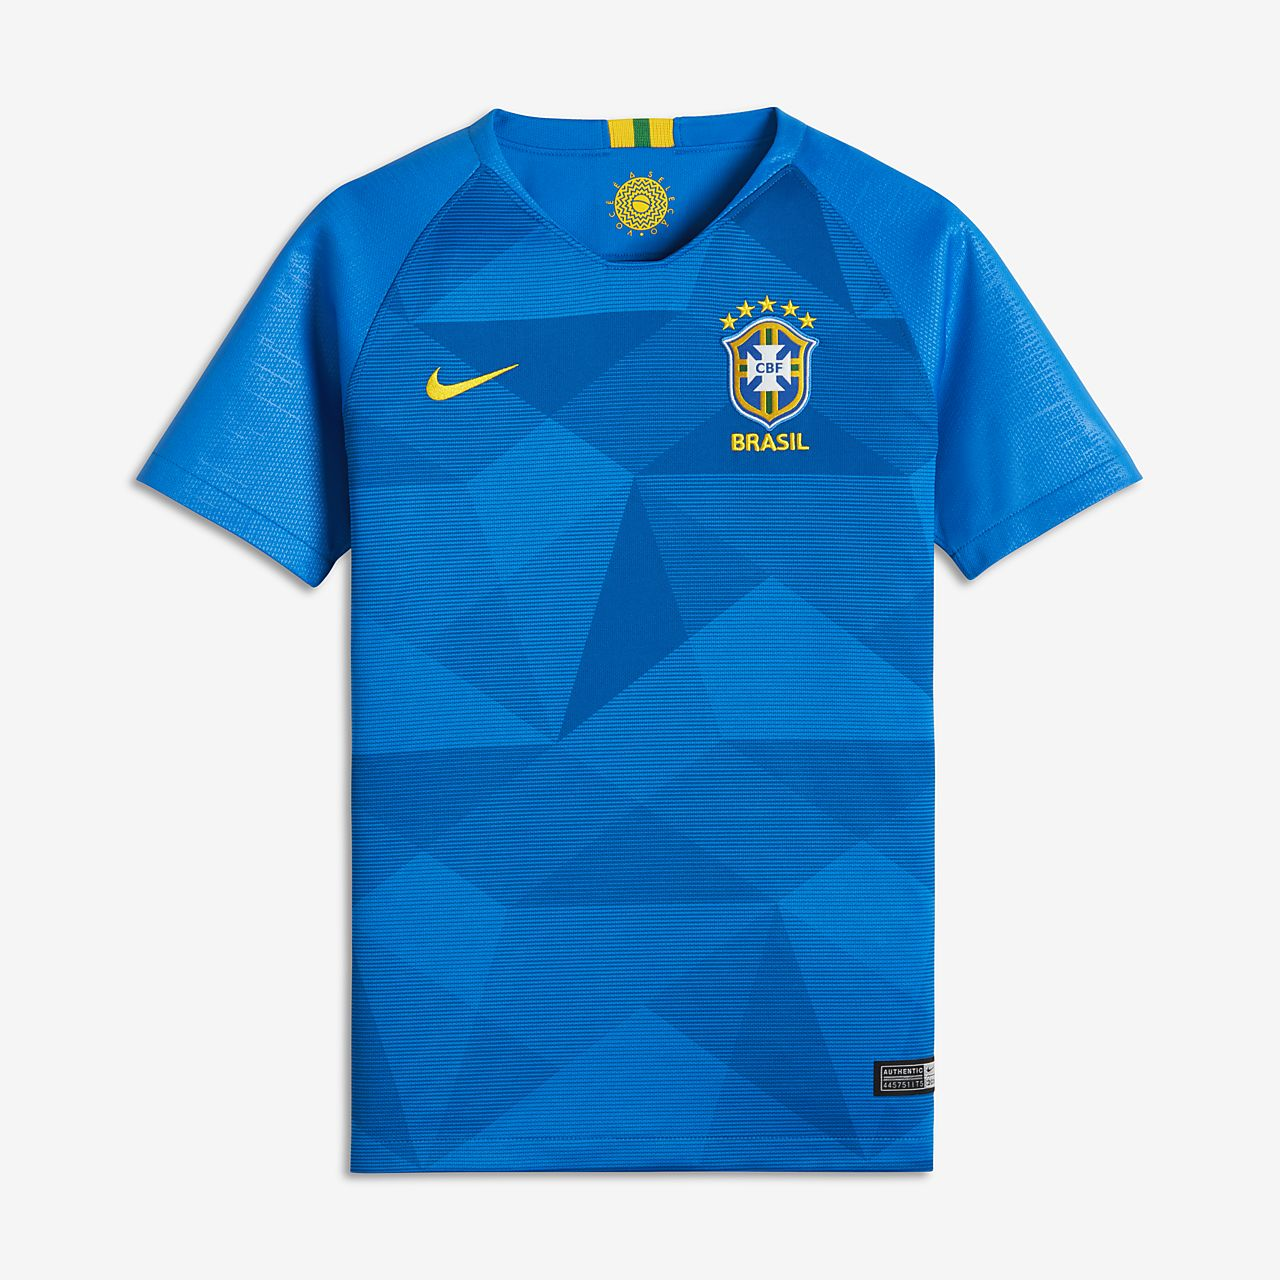 2018 Brasil CBF Stadium Away fotballdrakt for store barn